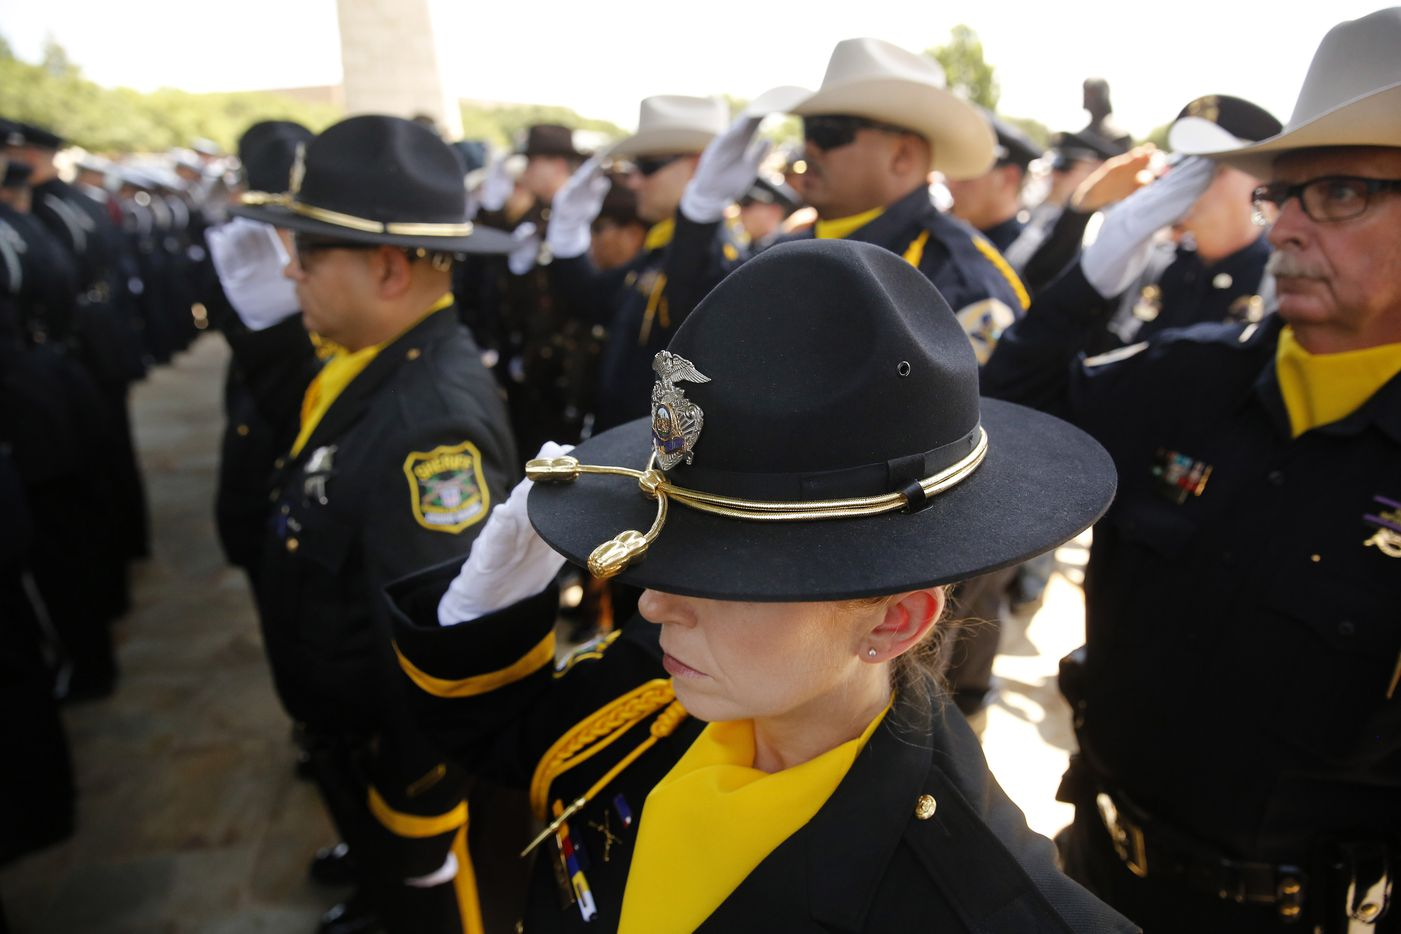 Sheriffs deputies salute as the casket of fallen Dallas police officer Lorne Ahrens is carried out of Prestonwood Baptist Church in Plano, Wednesday, July 12, 2016.